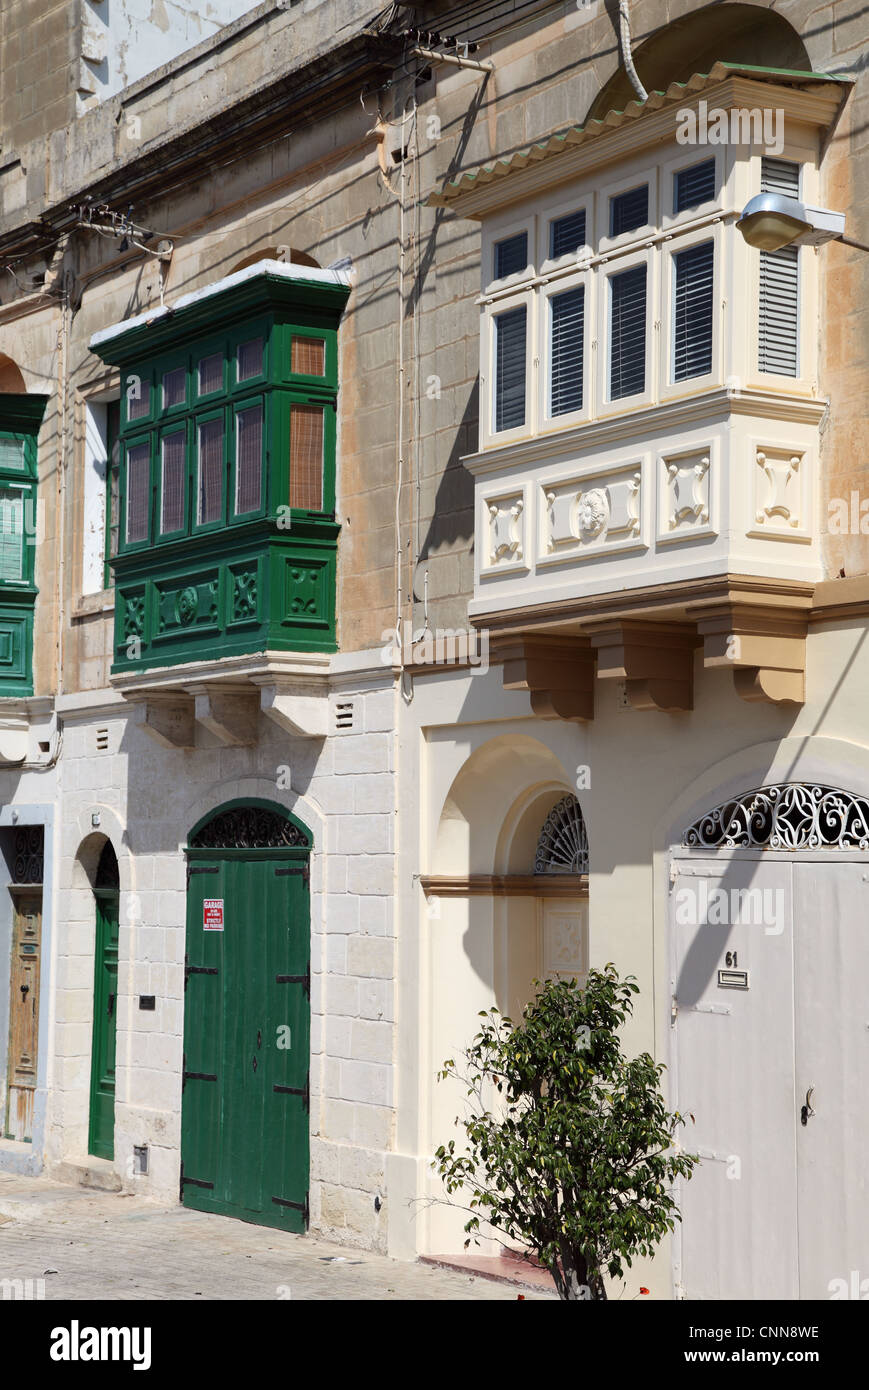 Two traditional Maltese houses with characteristic projecting bay windows or covered balconies, Rabat Malta, Europe - Stock Image